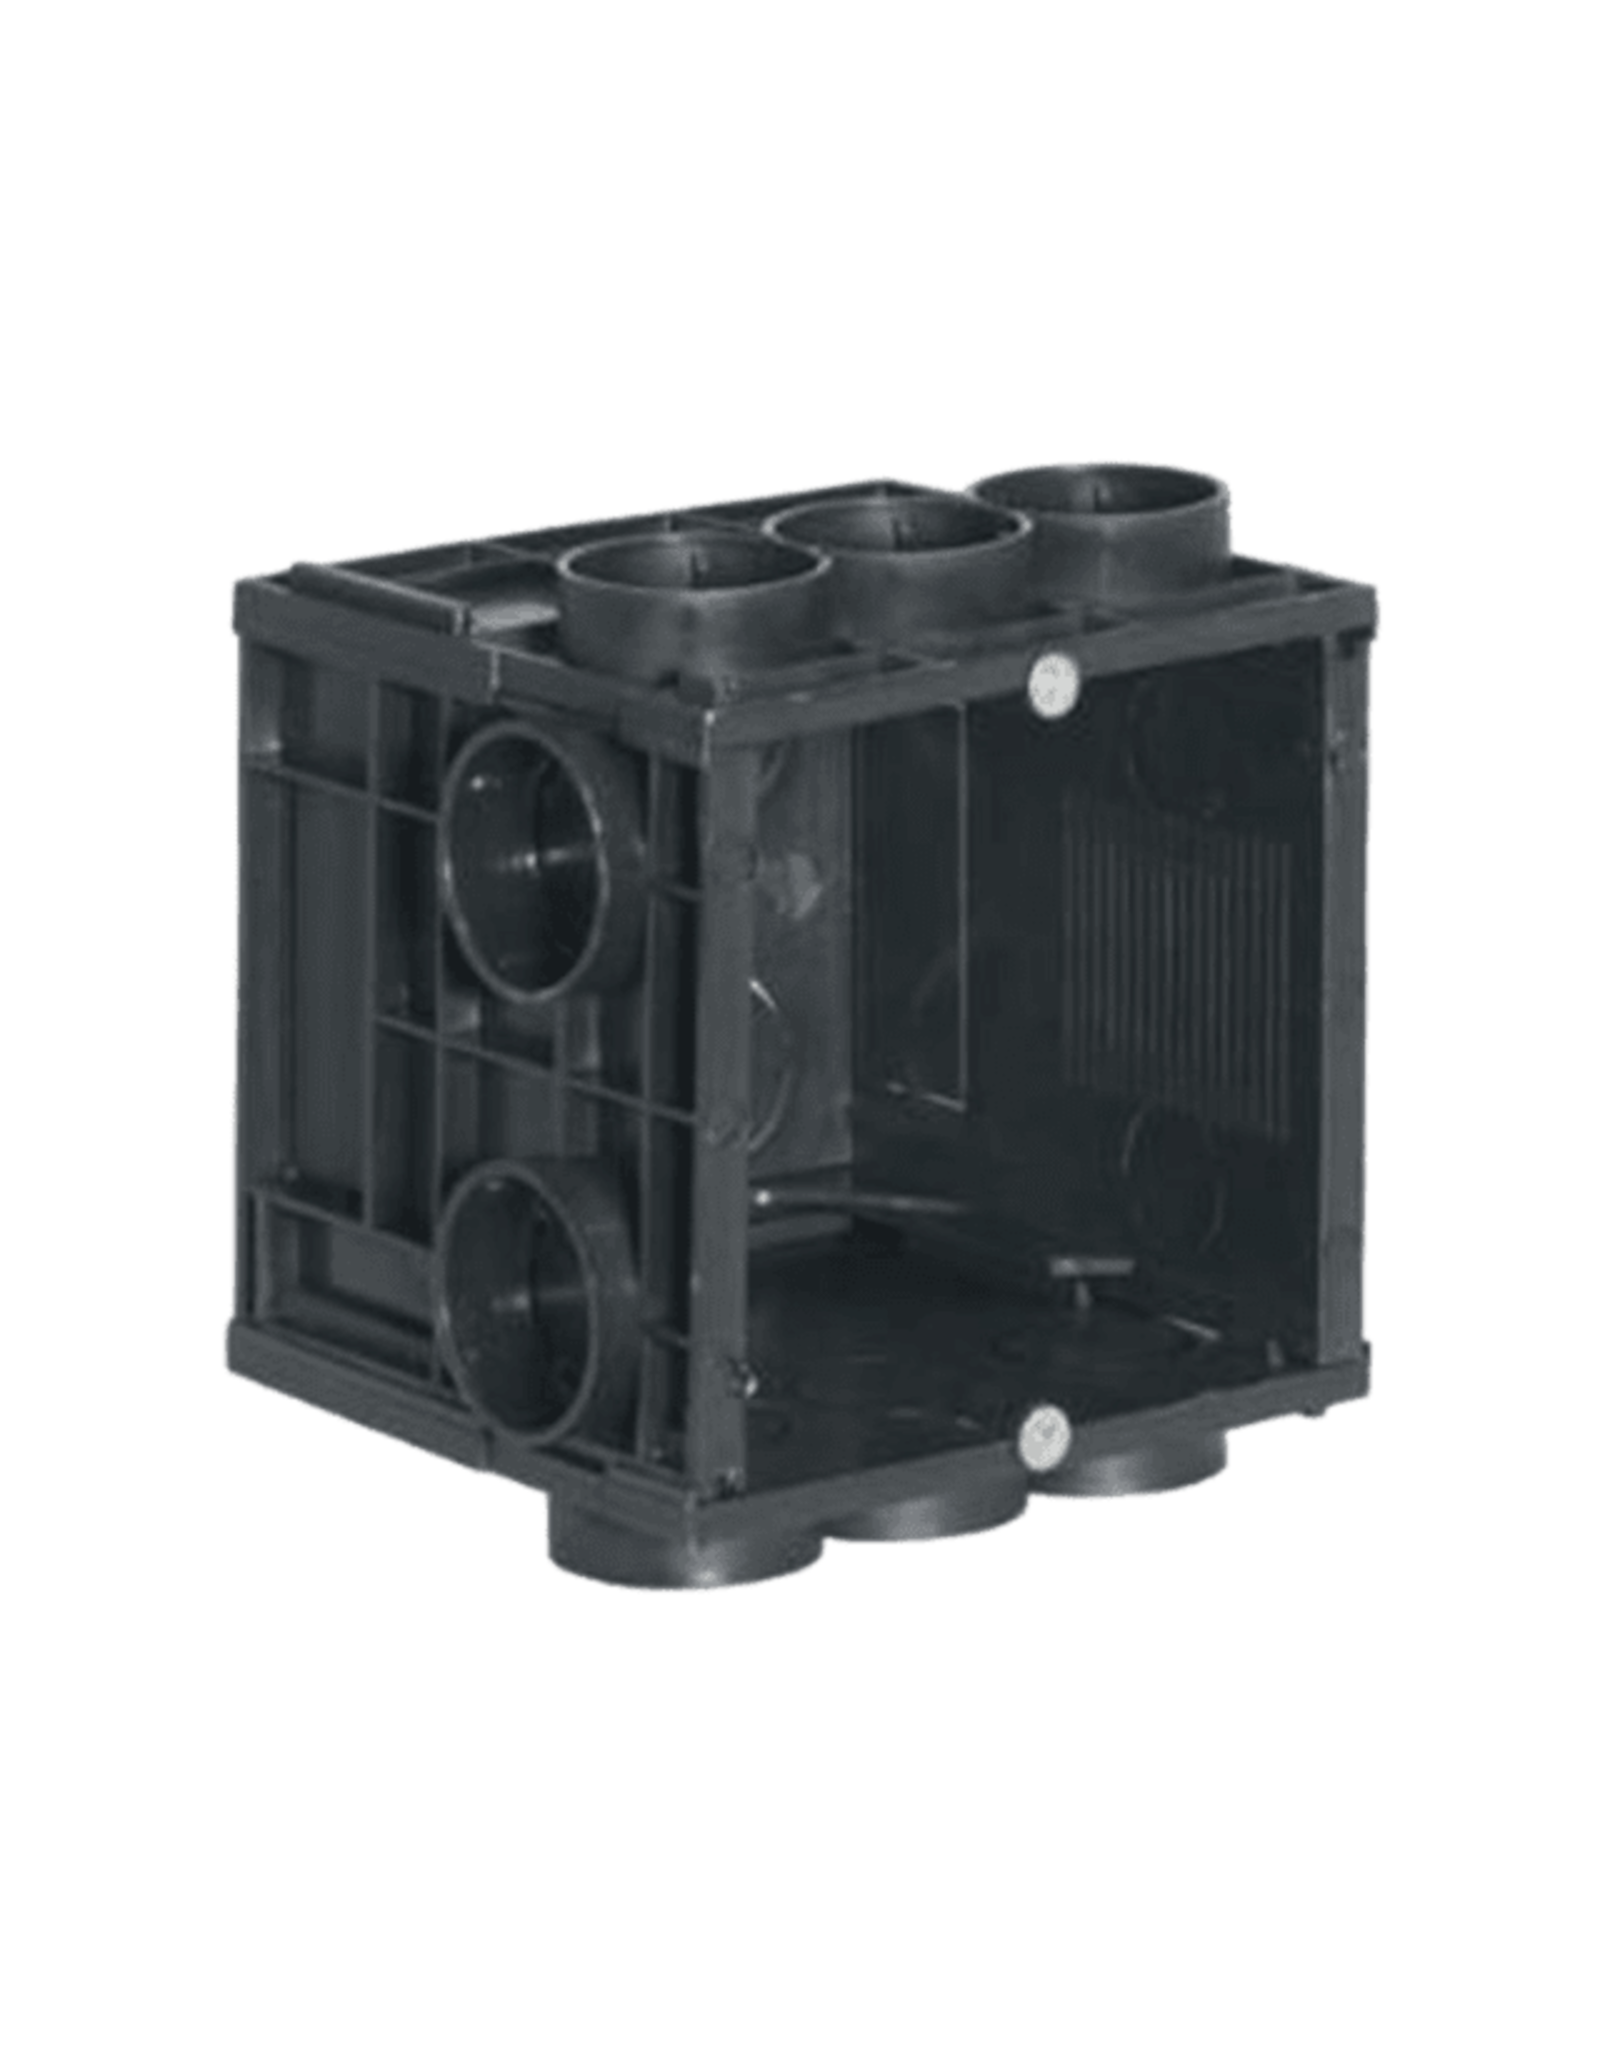 Audac Flush mount box for 45 x 45 mm wall panel - Solid wall